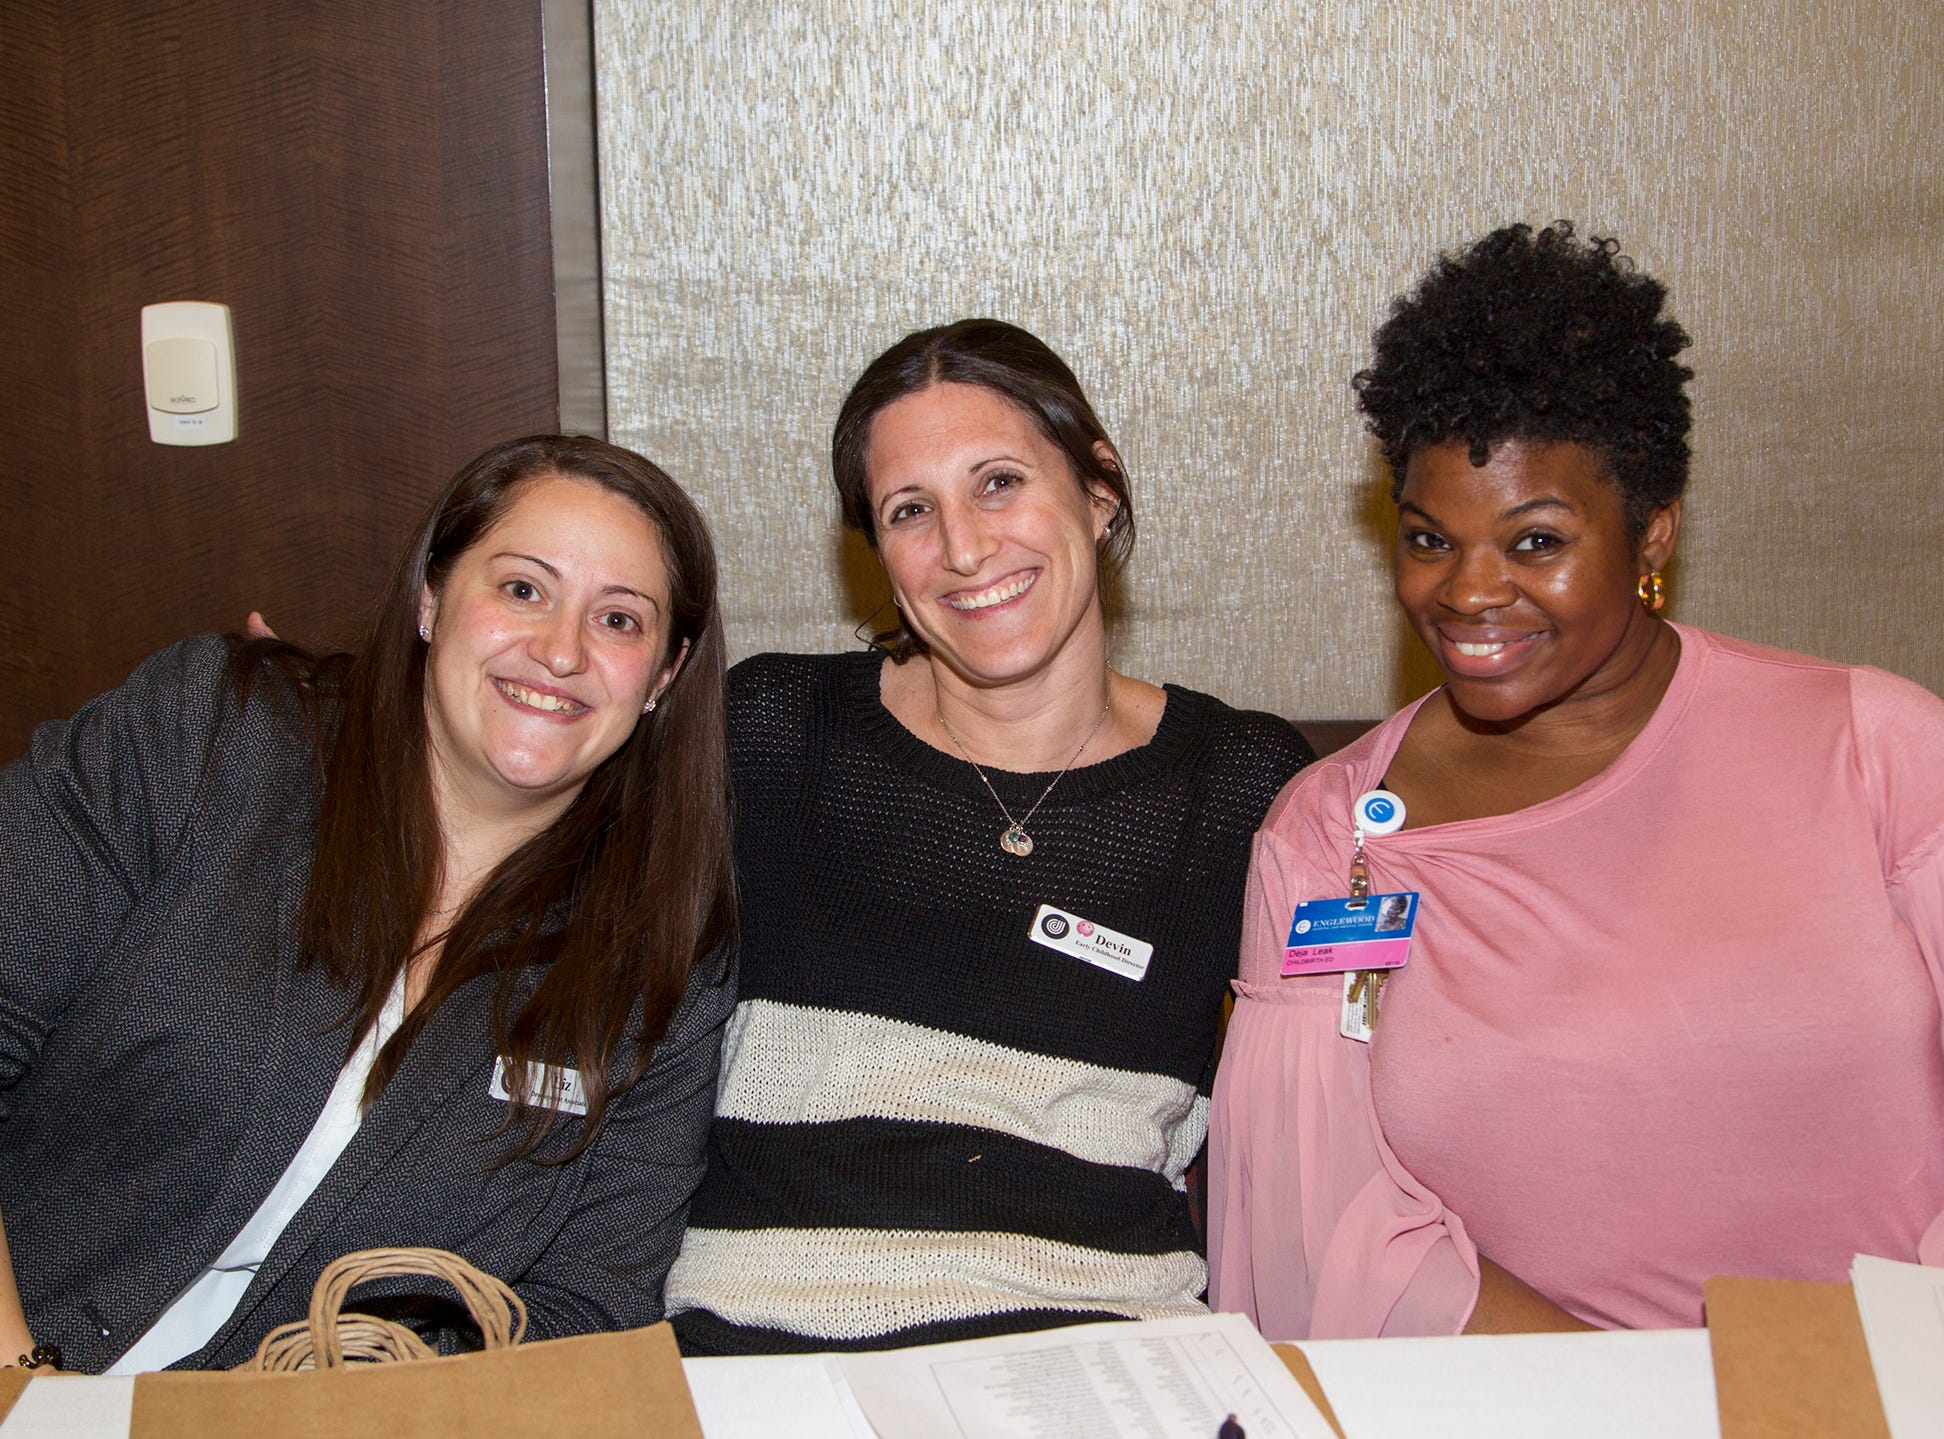 Liz Iannaconi, Devin Zukofoloy,  Deja Leak. Englewood Health and Kaplen JCC on the Palisades sponsored a Mind, Body, & Sole - a women's health & fitness social night at Kaplen JCC on the Palisades in Tenafly.02/13/2019